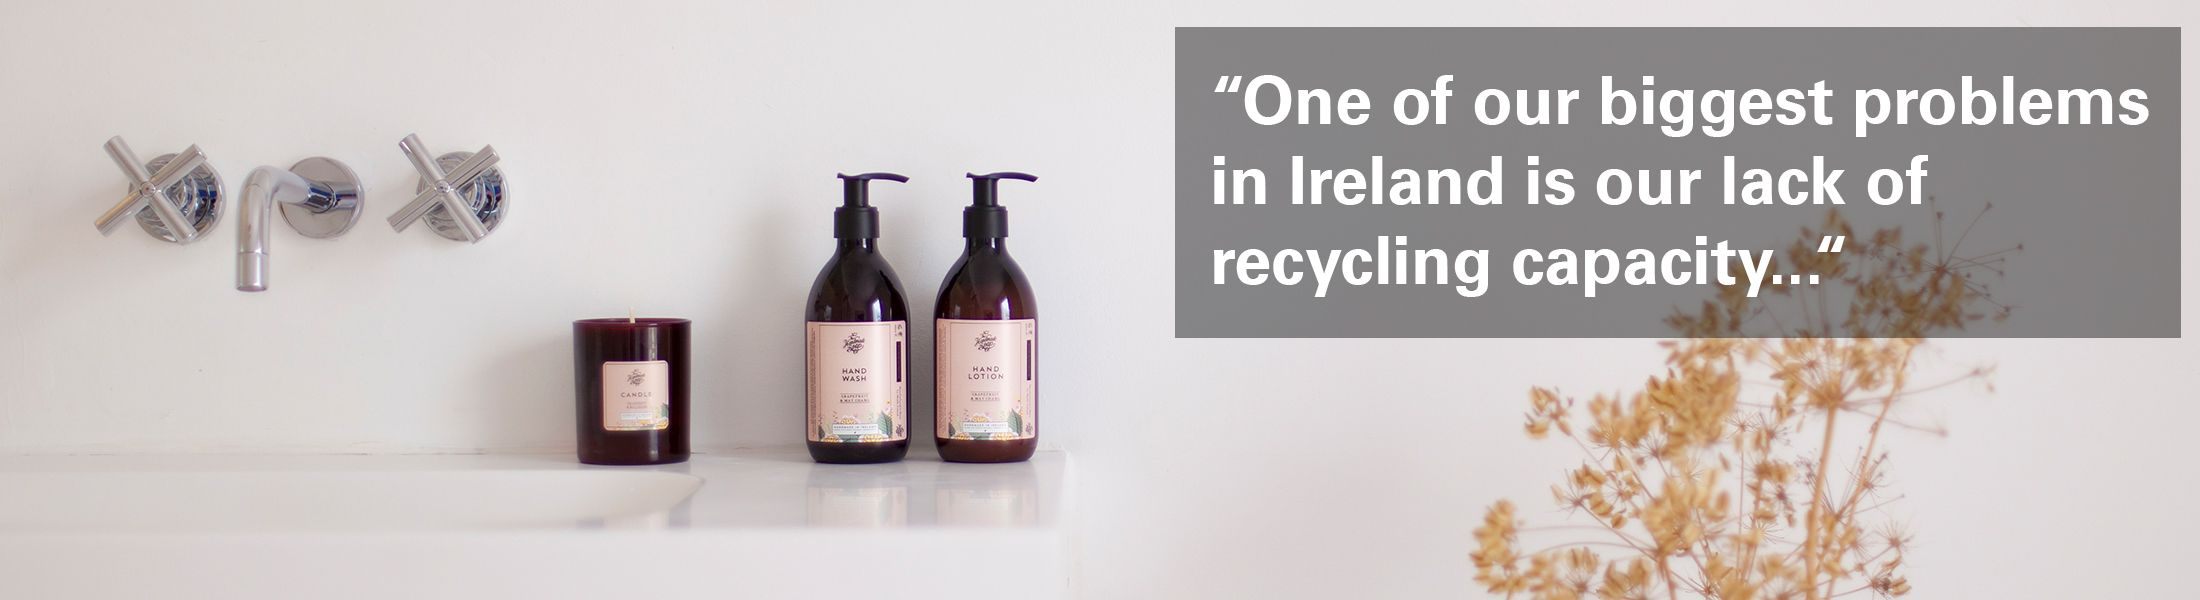 "Photo of The Handmade Soap Company's products in a bathroom with the text ""One of our biggest problems in Ireland is our lack of recycling capacity"" overlaid."